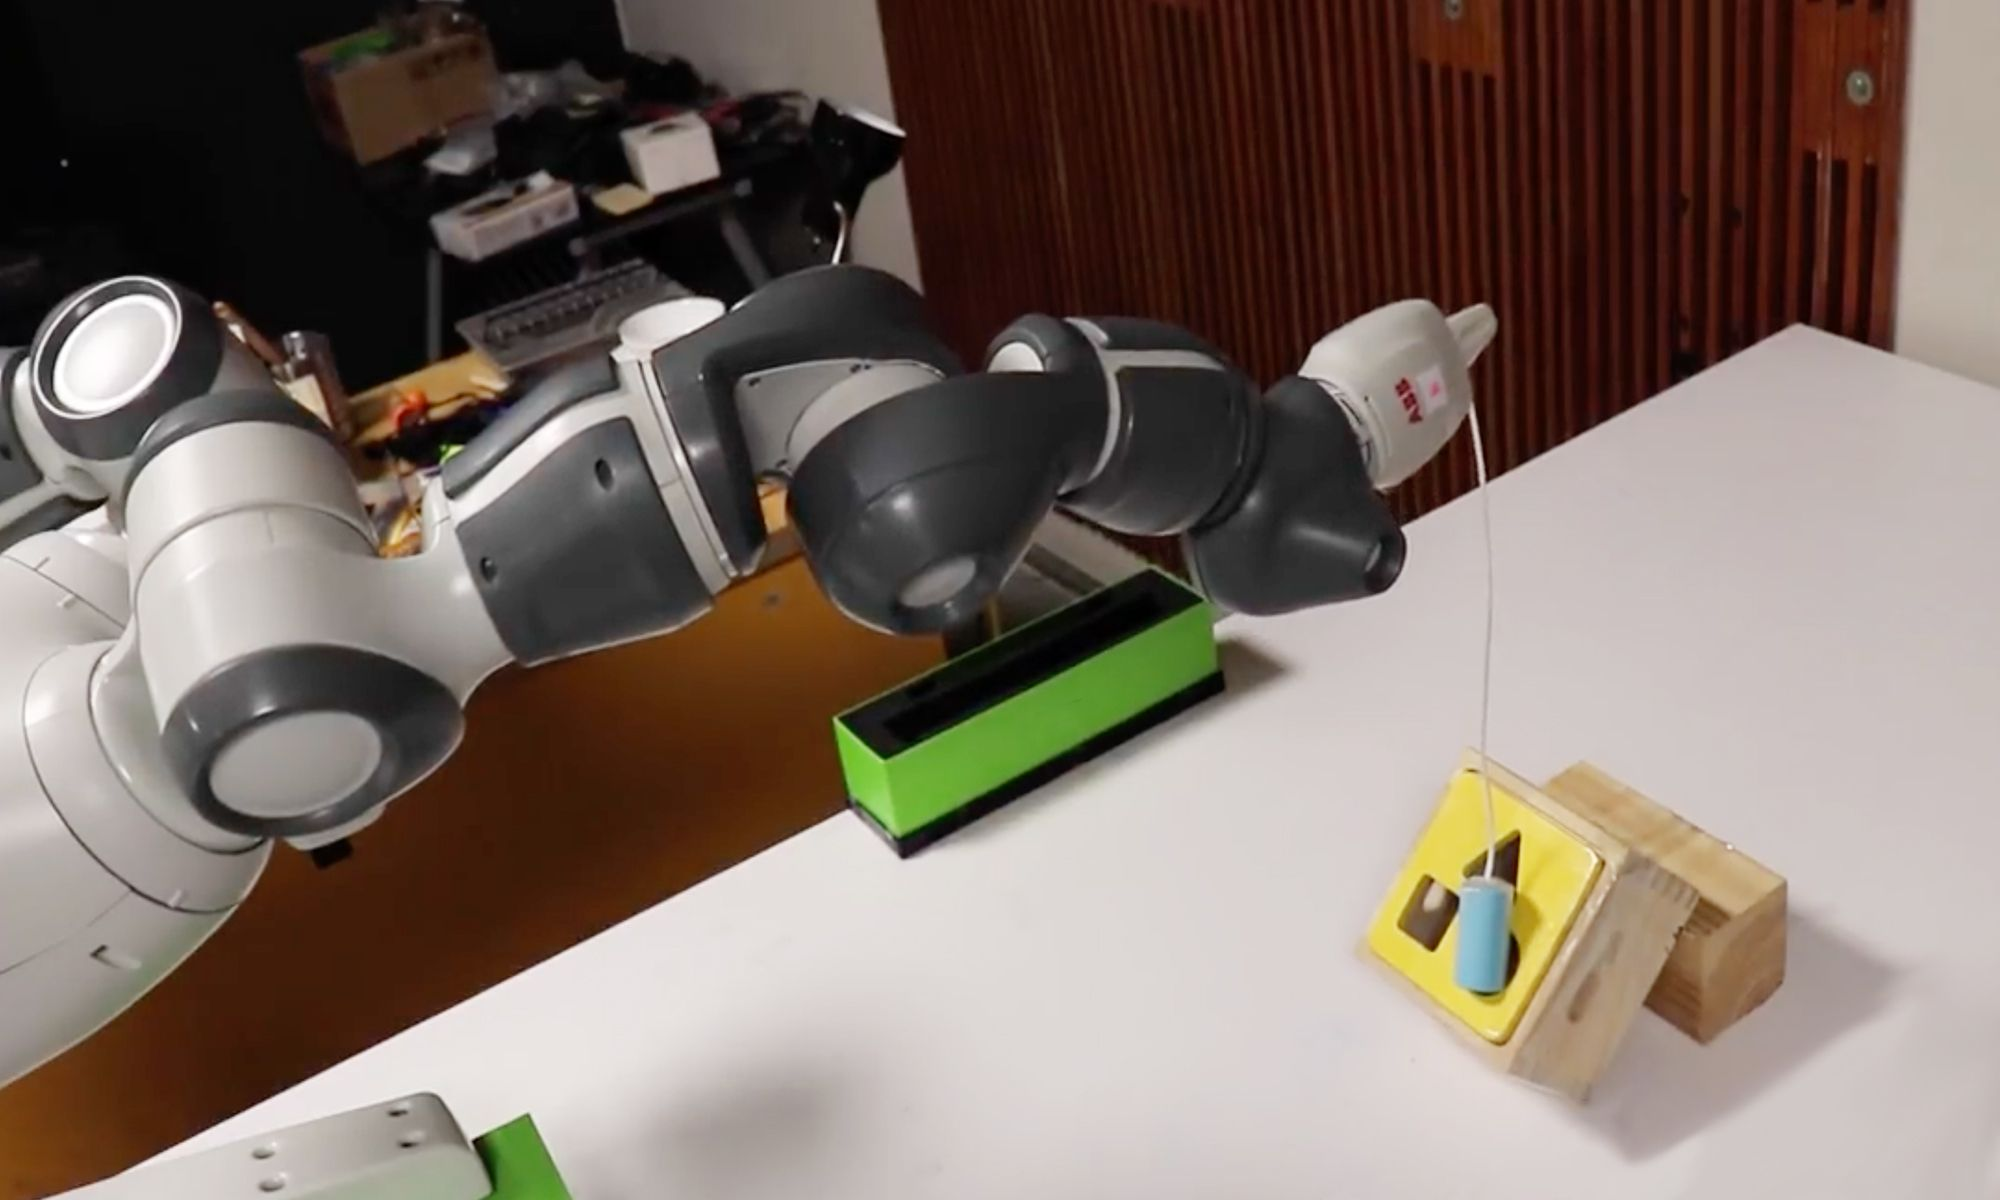 NVIDIA sim-to-real method to train robots using deep learning and simulations